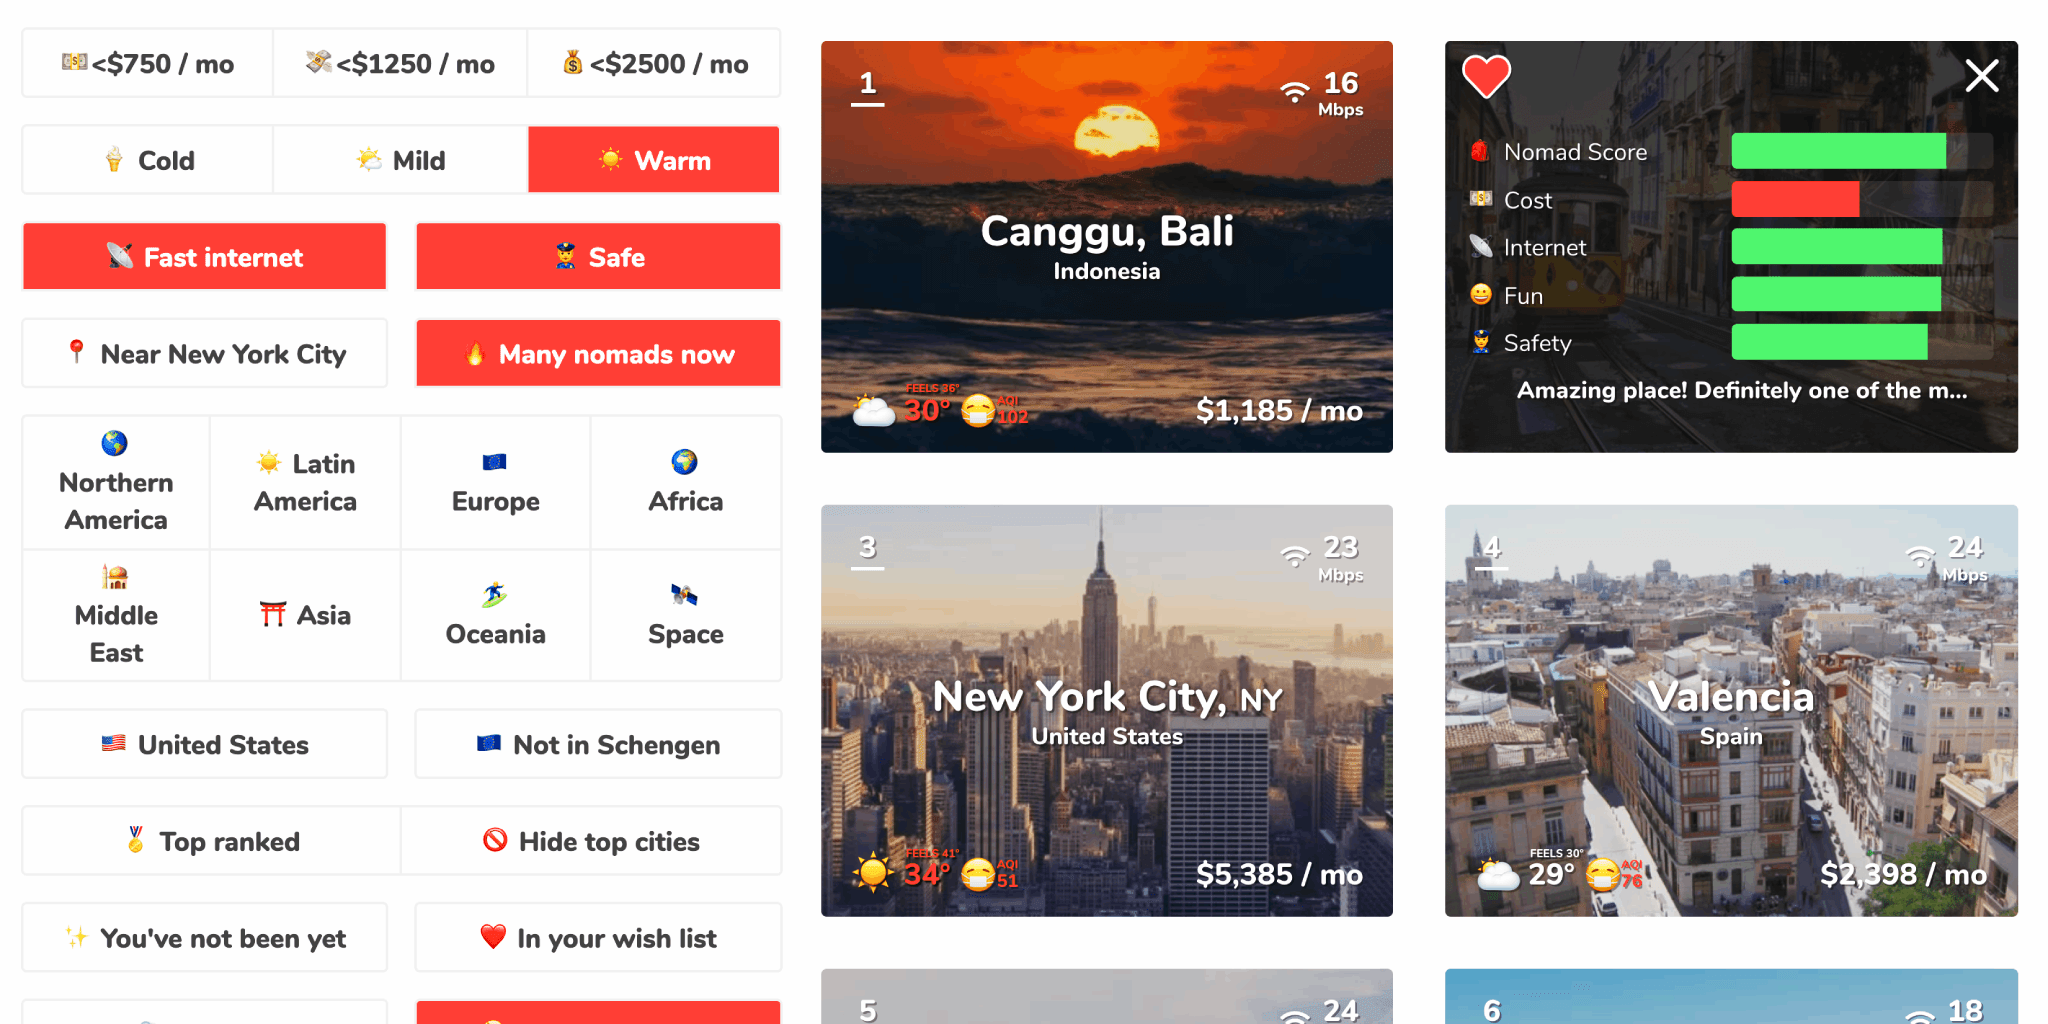 Nomad List - Best Cities to Live and Work Remotely for Digital Nomads